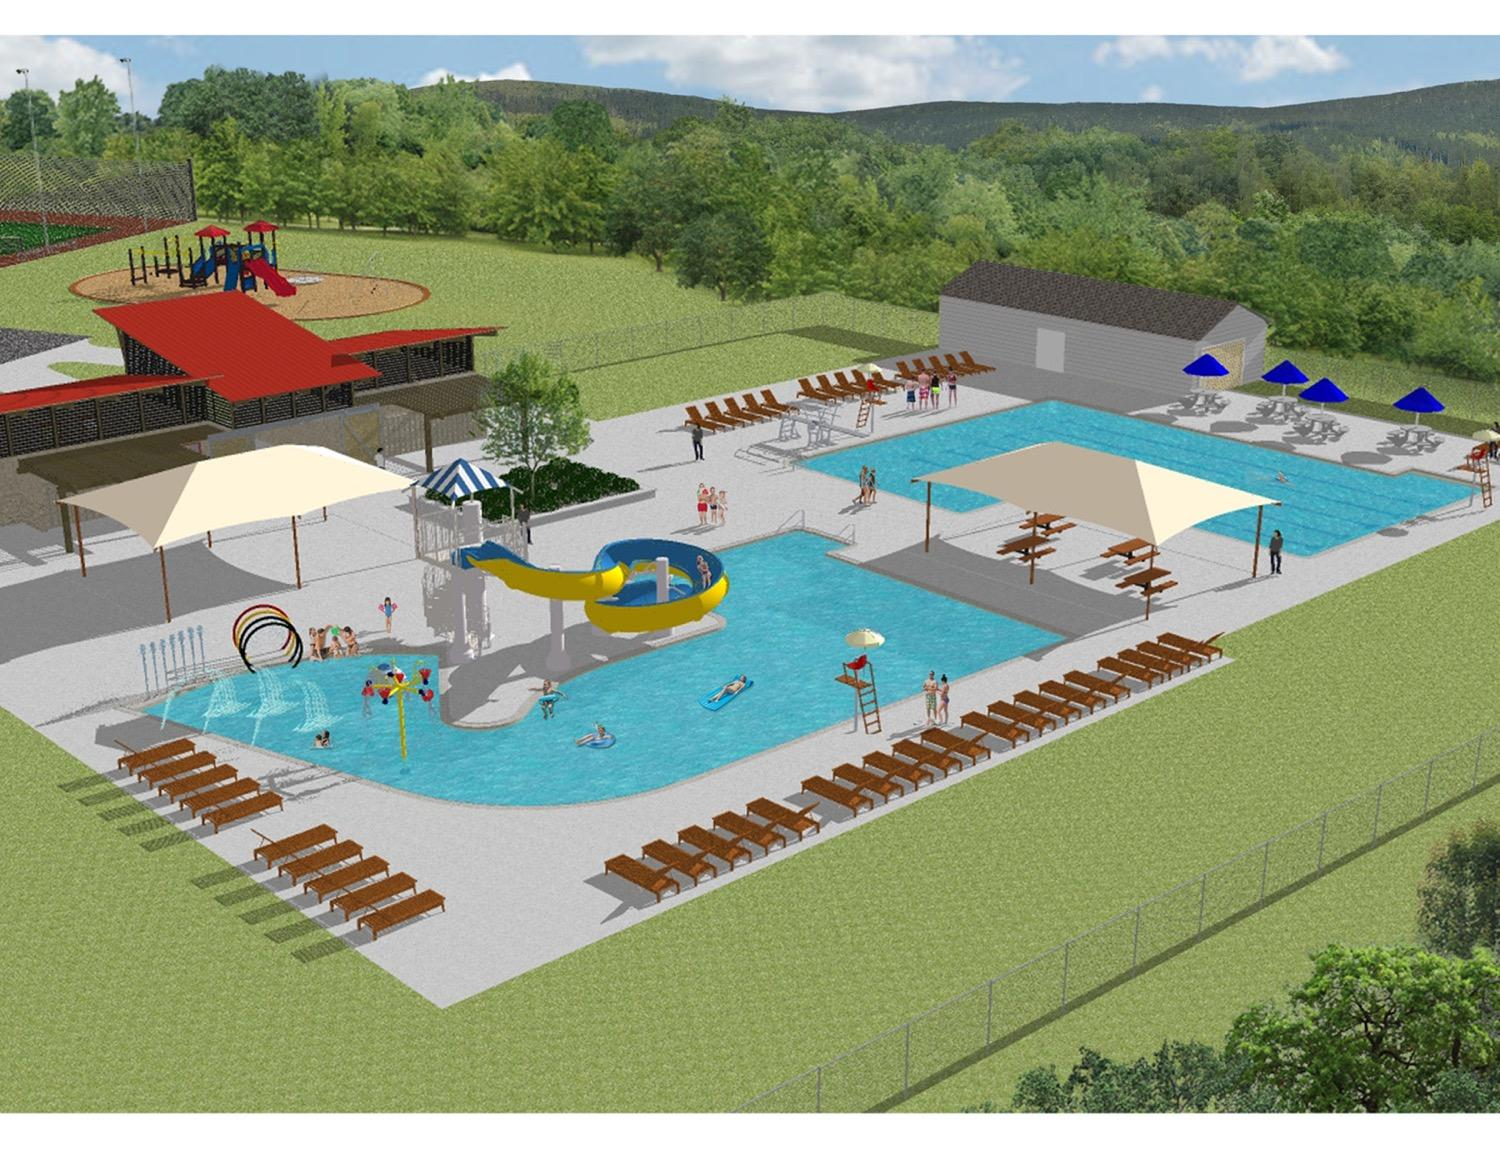 2 5 million pool on rutland city ballot vermont public - Public swimming pool design ...